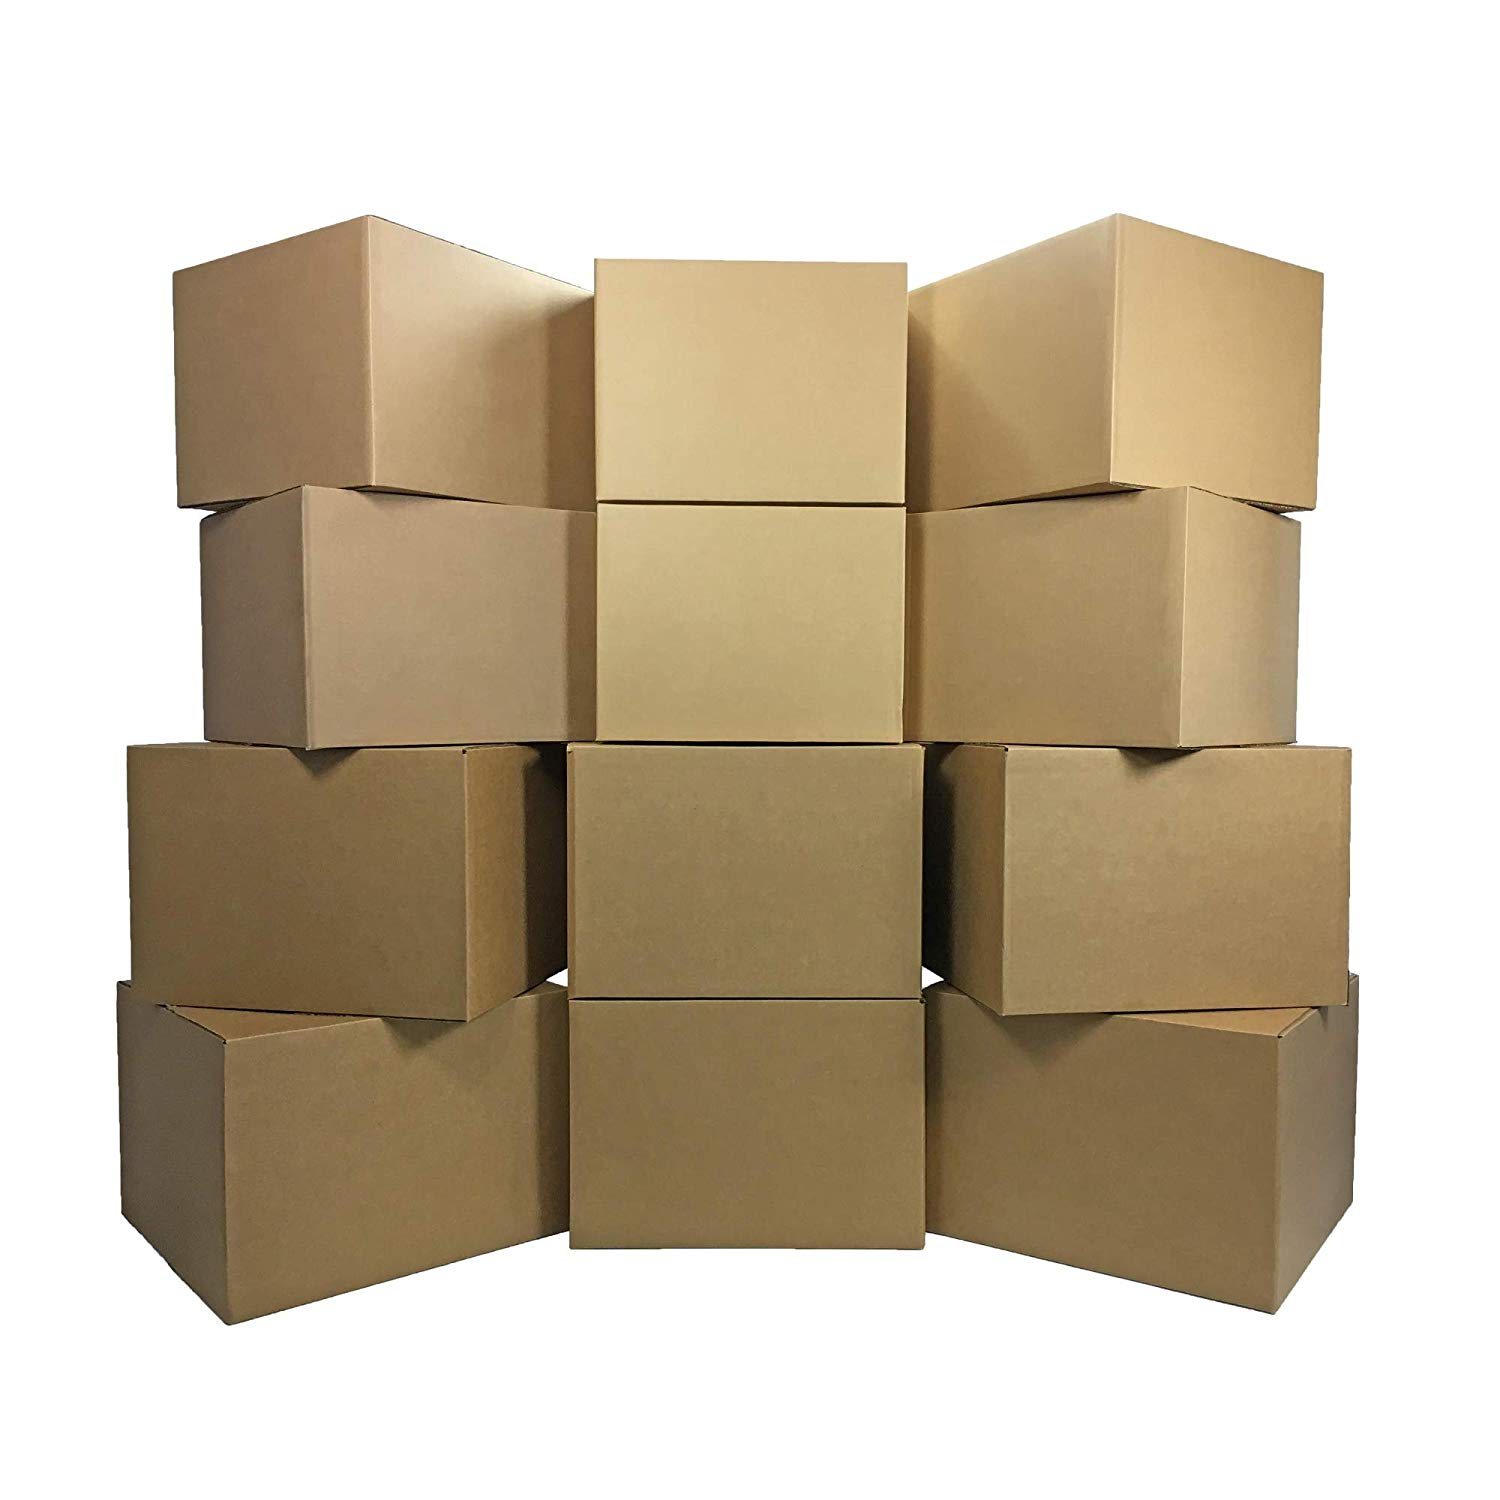 Custom product boxes and their effective utilization in the packaging industry